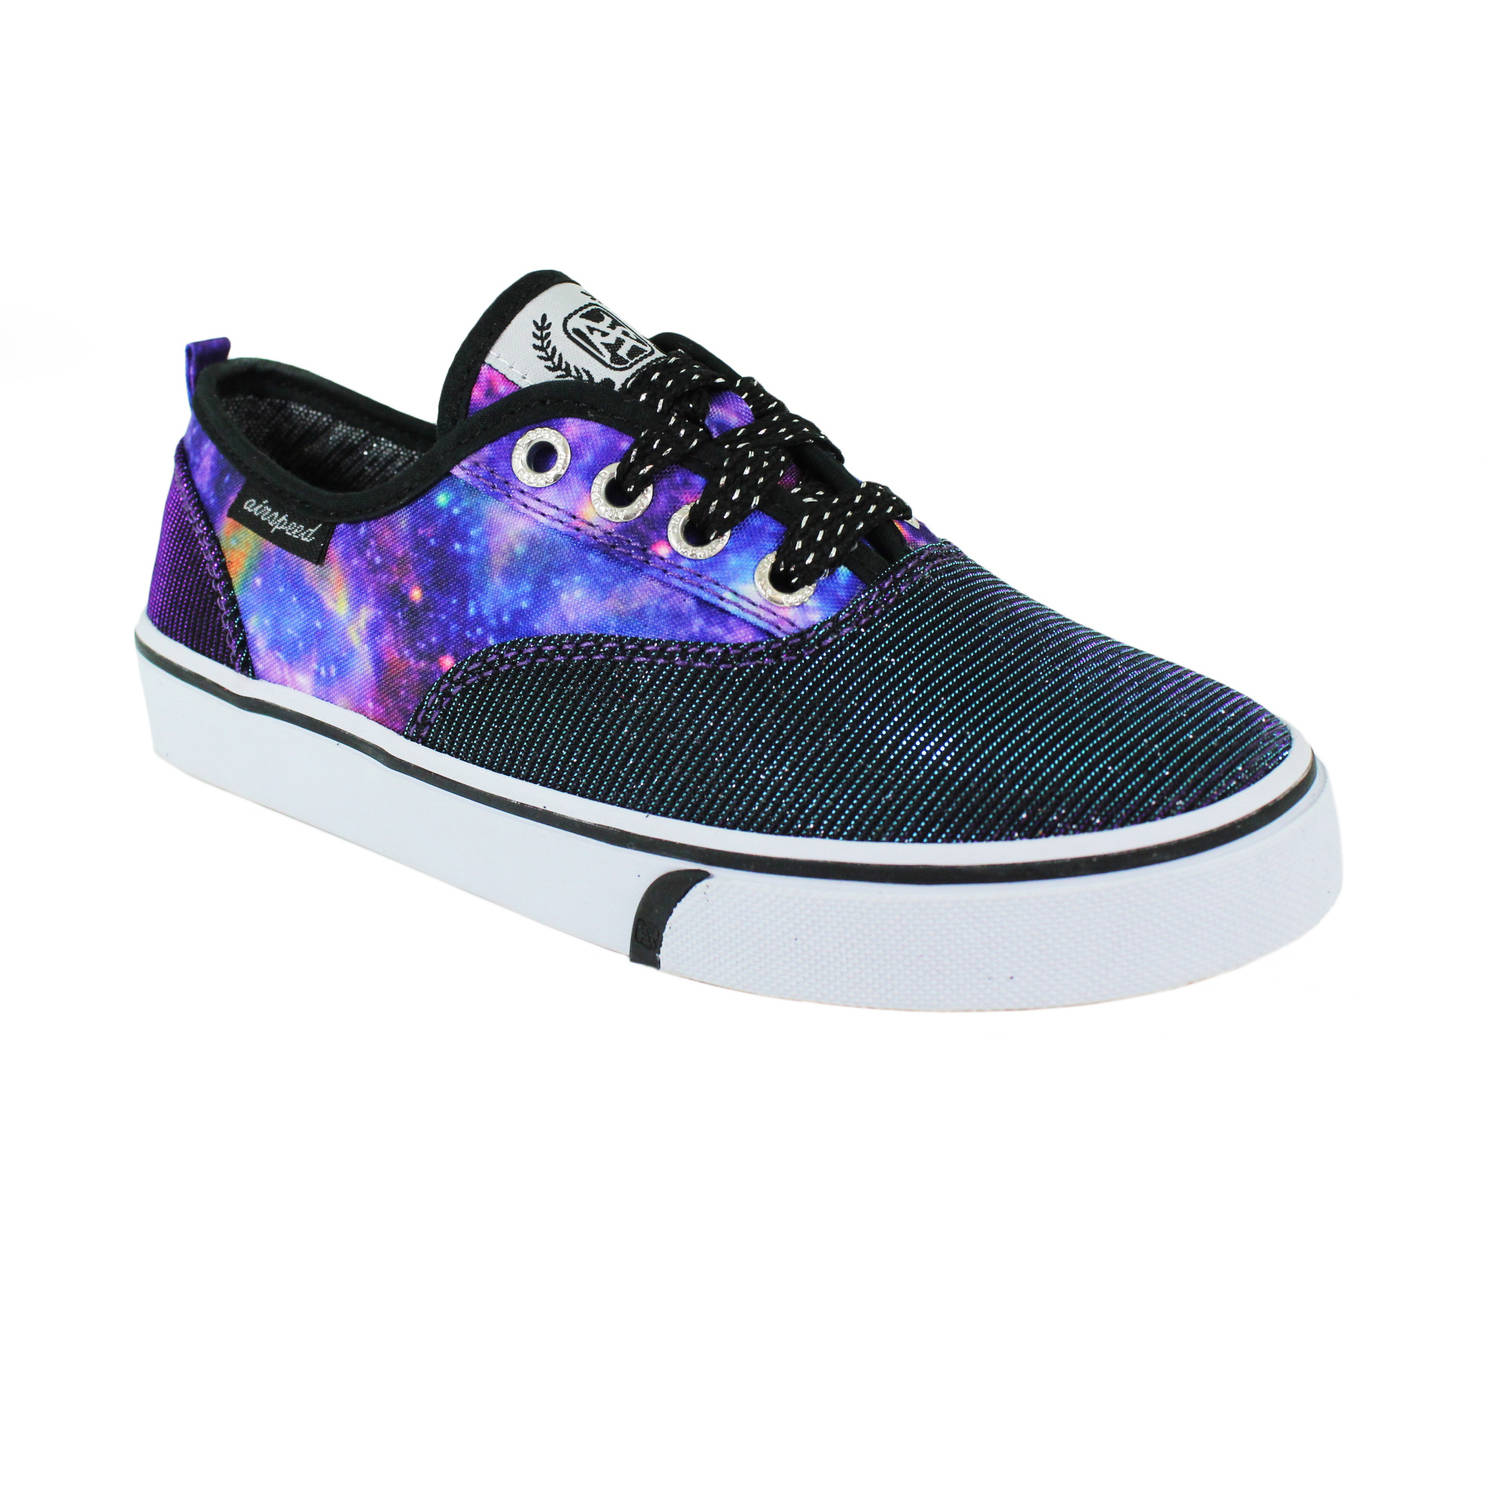 Airspeed  Girl's Canvas Sneaker - Exclusive color